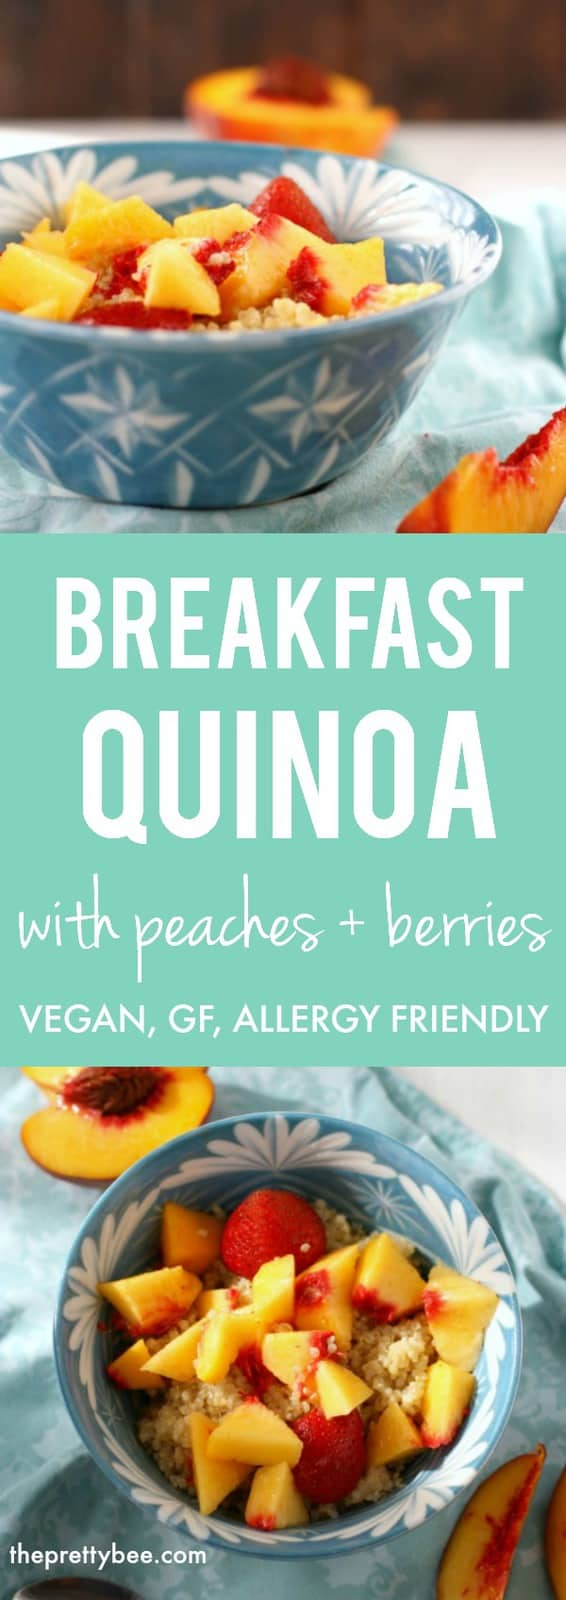 Creamy breakfast quinoa is a healthy and tasty way to start the day! Gluten free and dairy free, and so delicious! #glutenfree #dairyfree #nutfree #vegan #breakfast